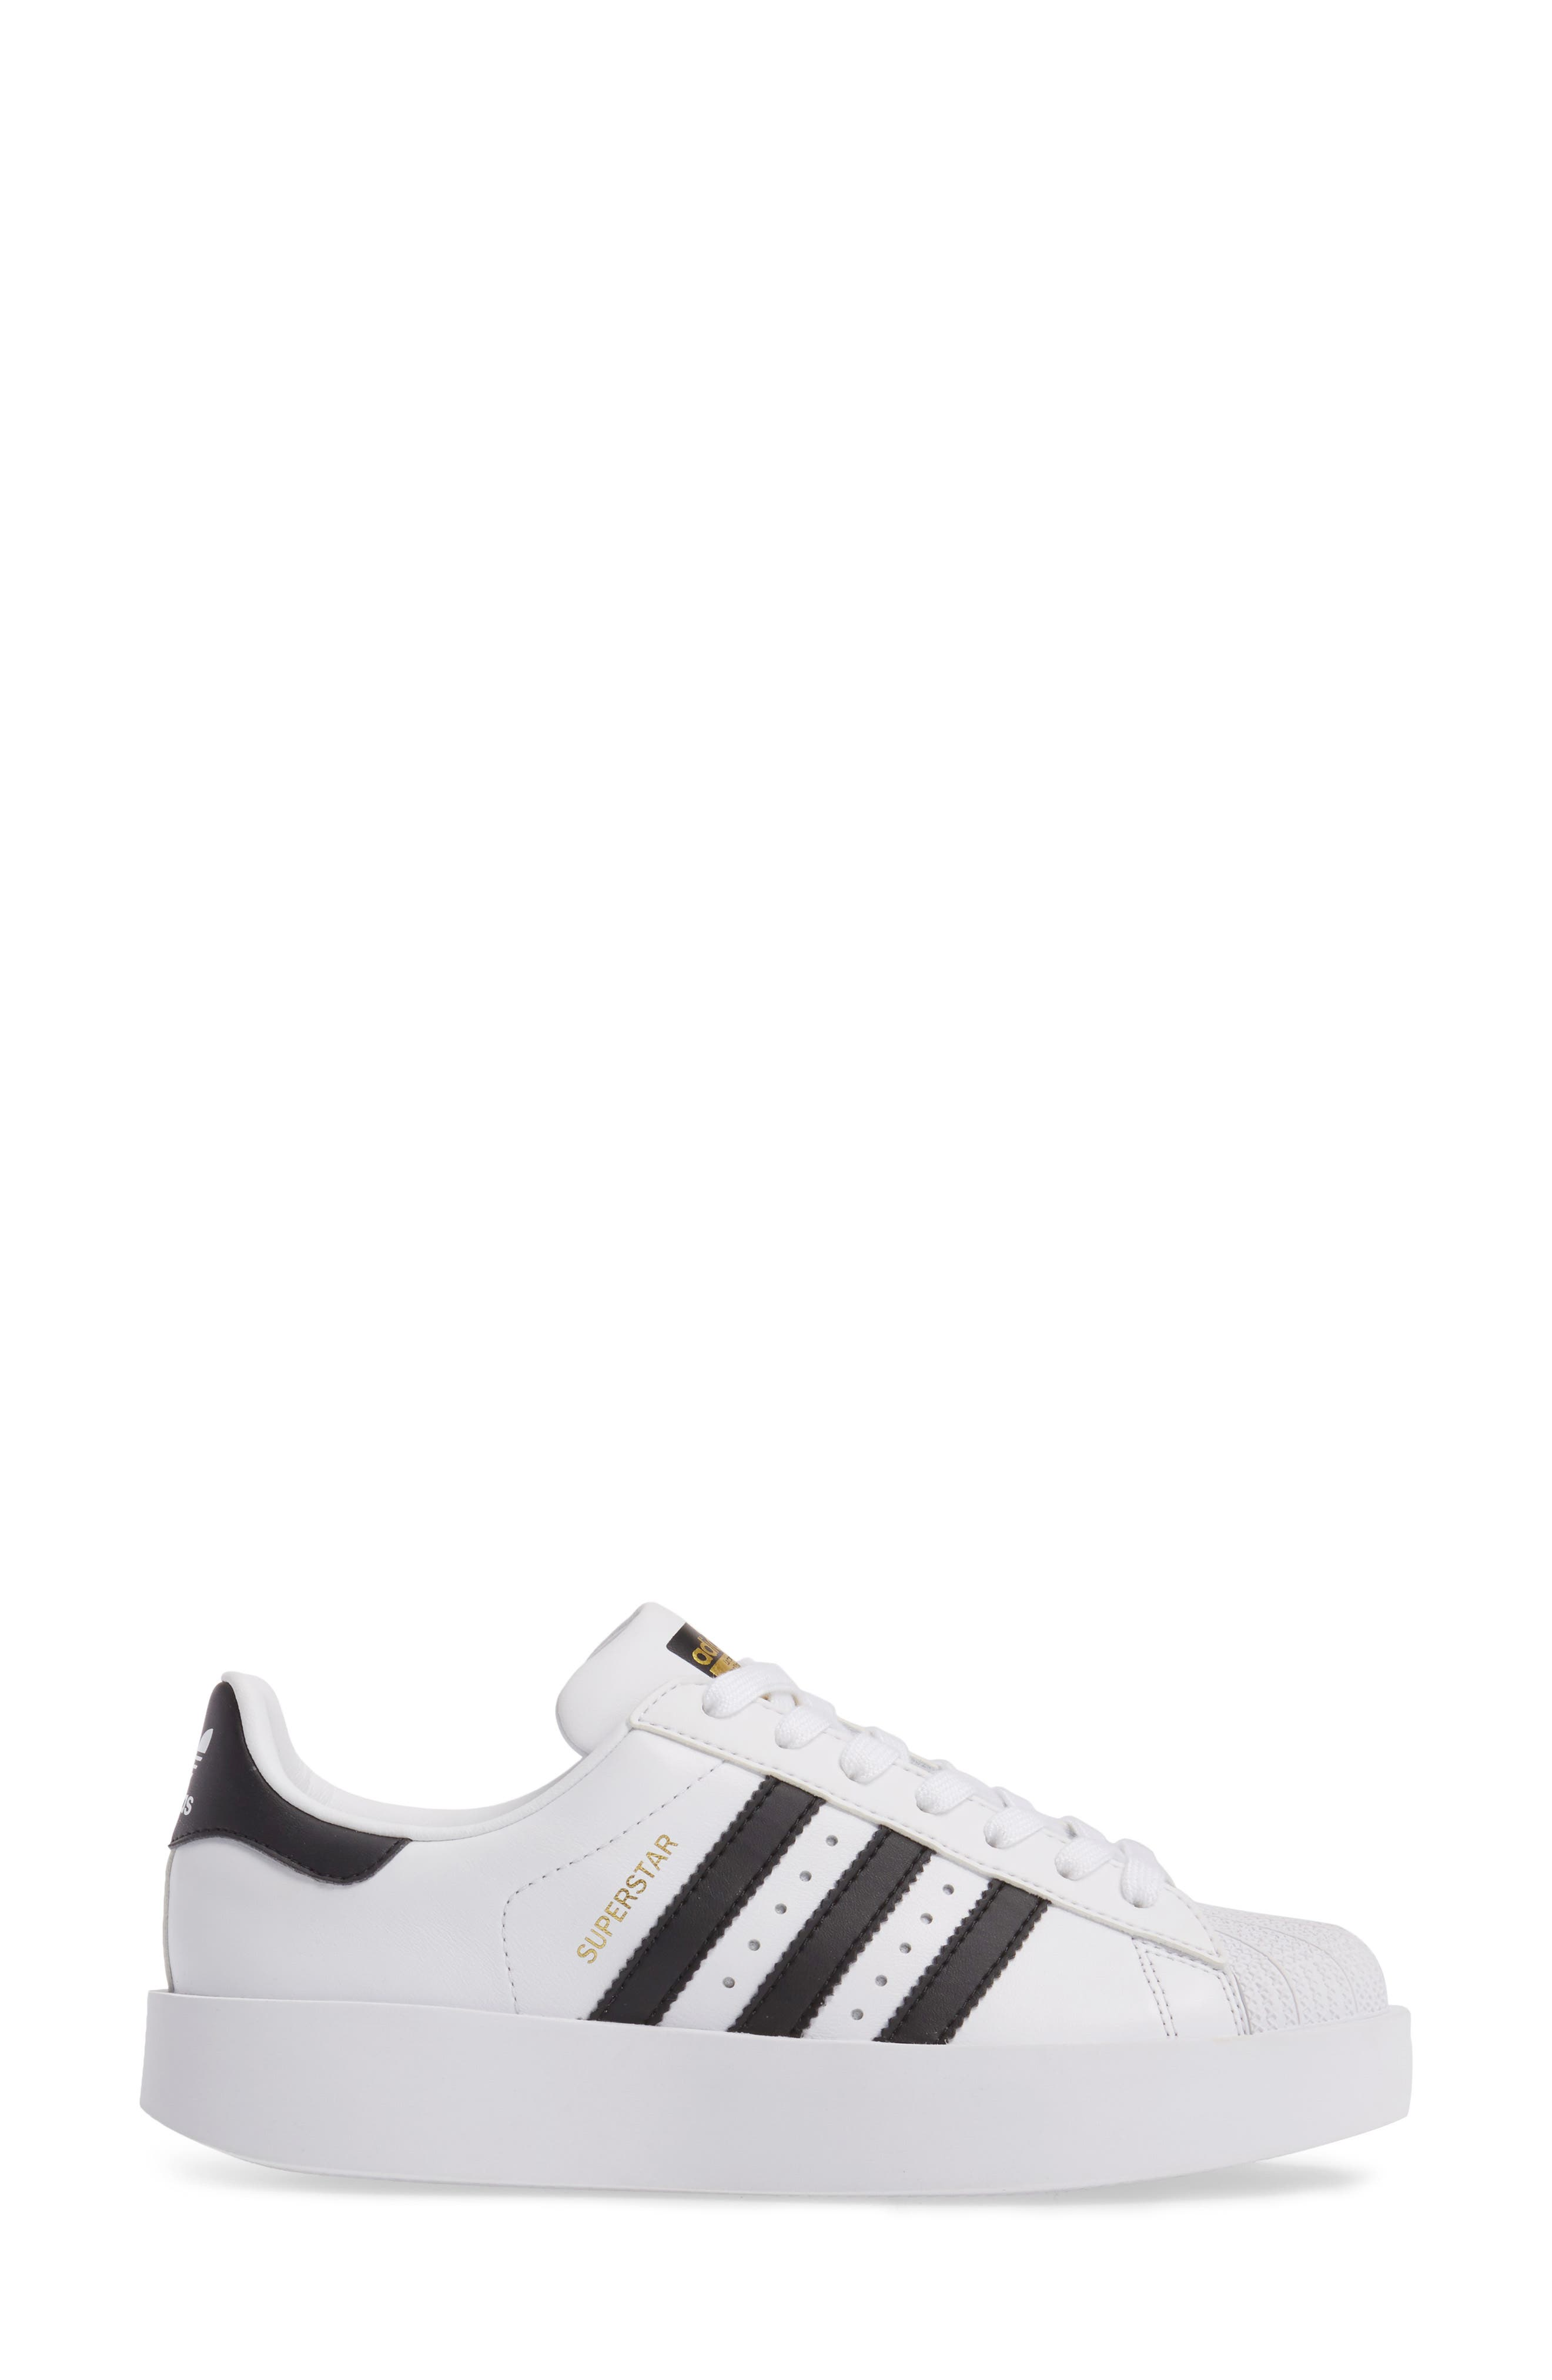 Alternate Image 3  - adidas Superstar Bold Platform Sneaker (Women)